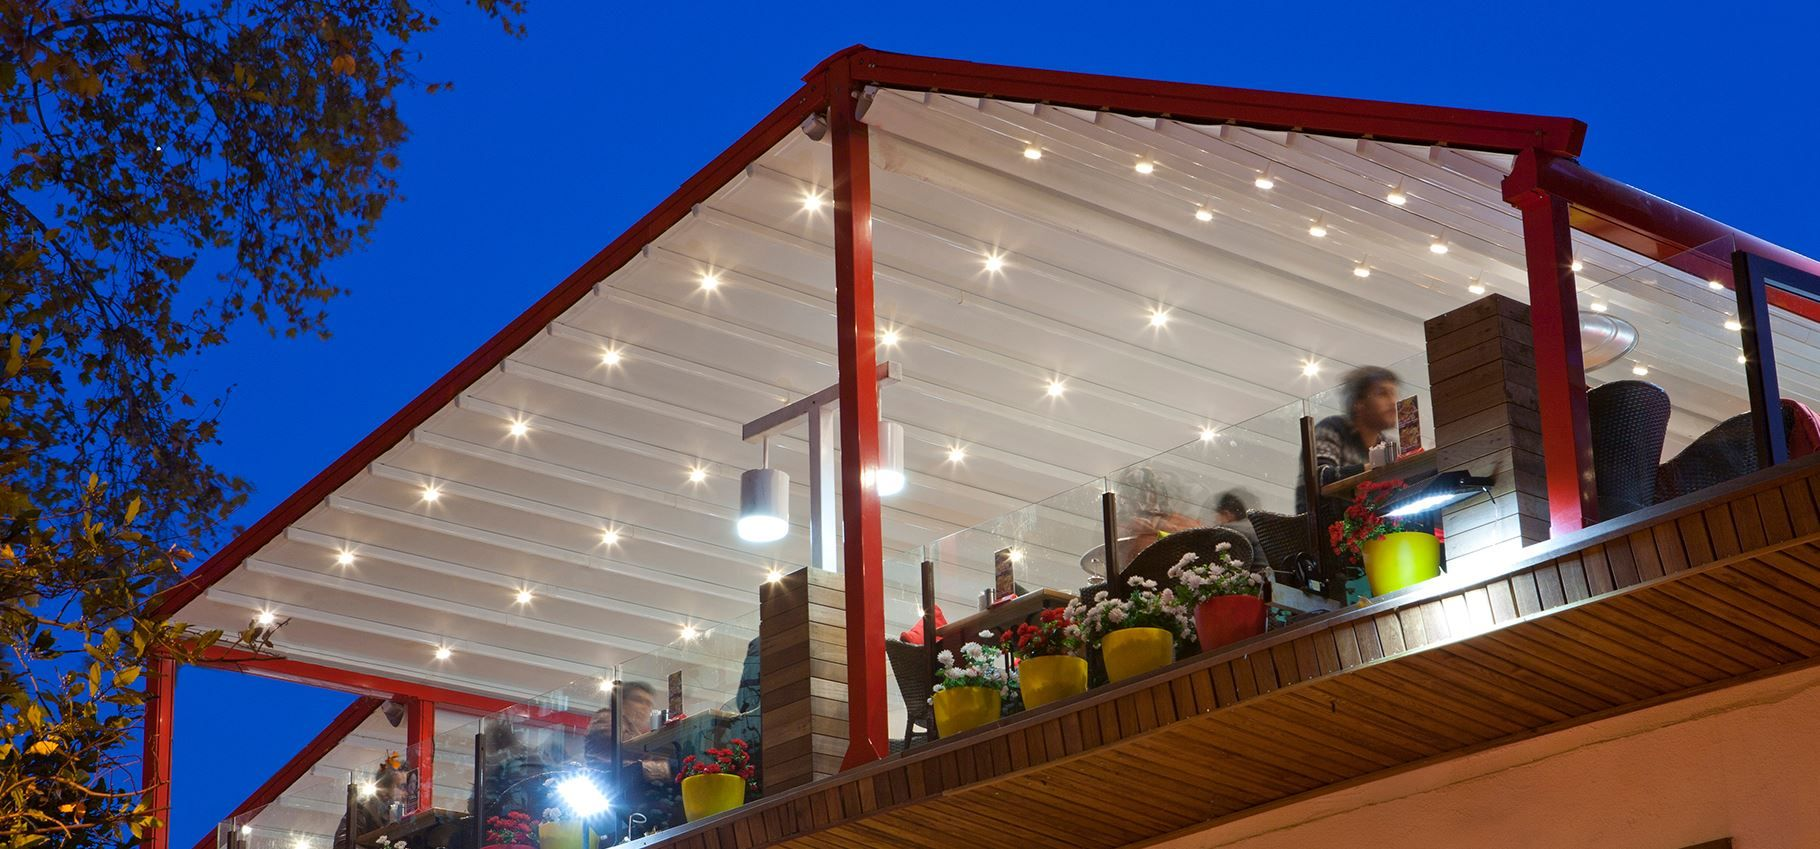 Retractable Roof System Awnings Roofing Systems Awning Retractable Roof